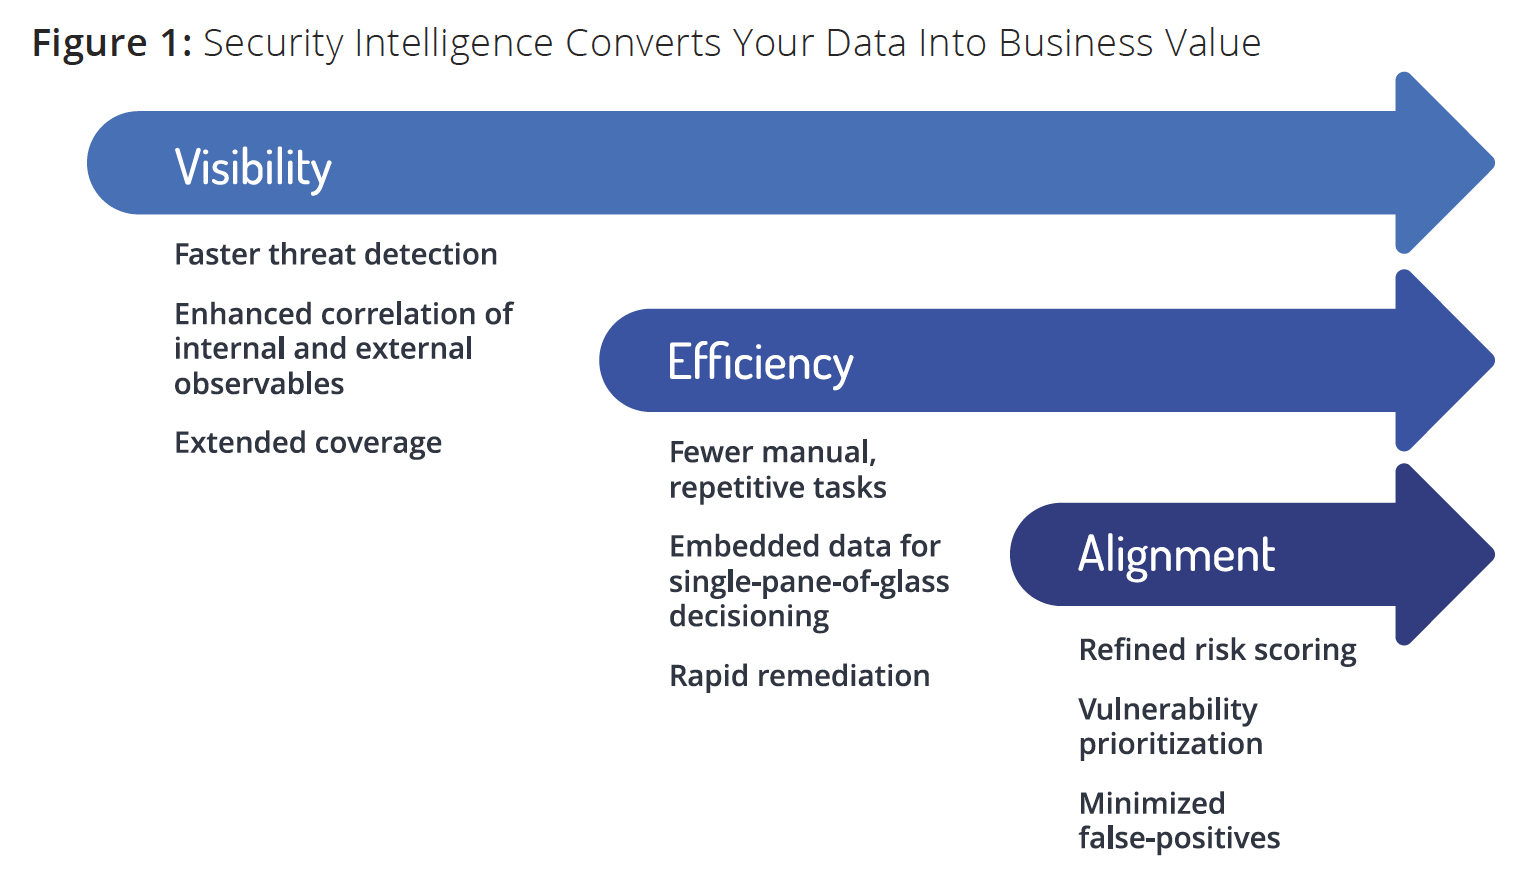 Figure 1: Security Intelligence Converts Your Data Into Business Value